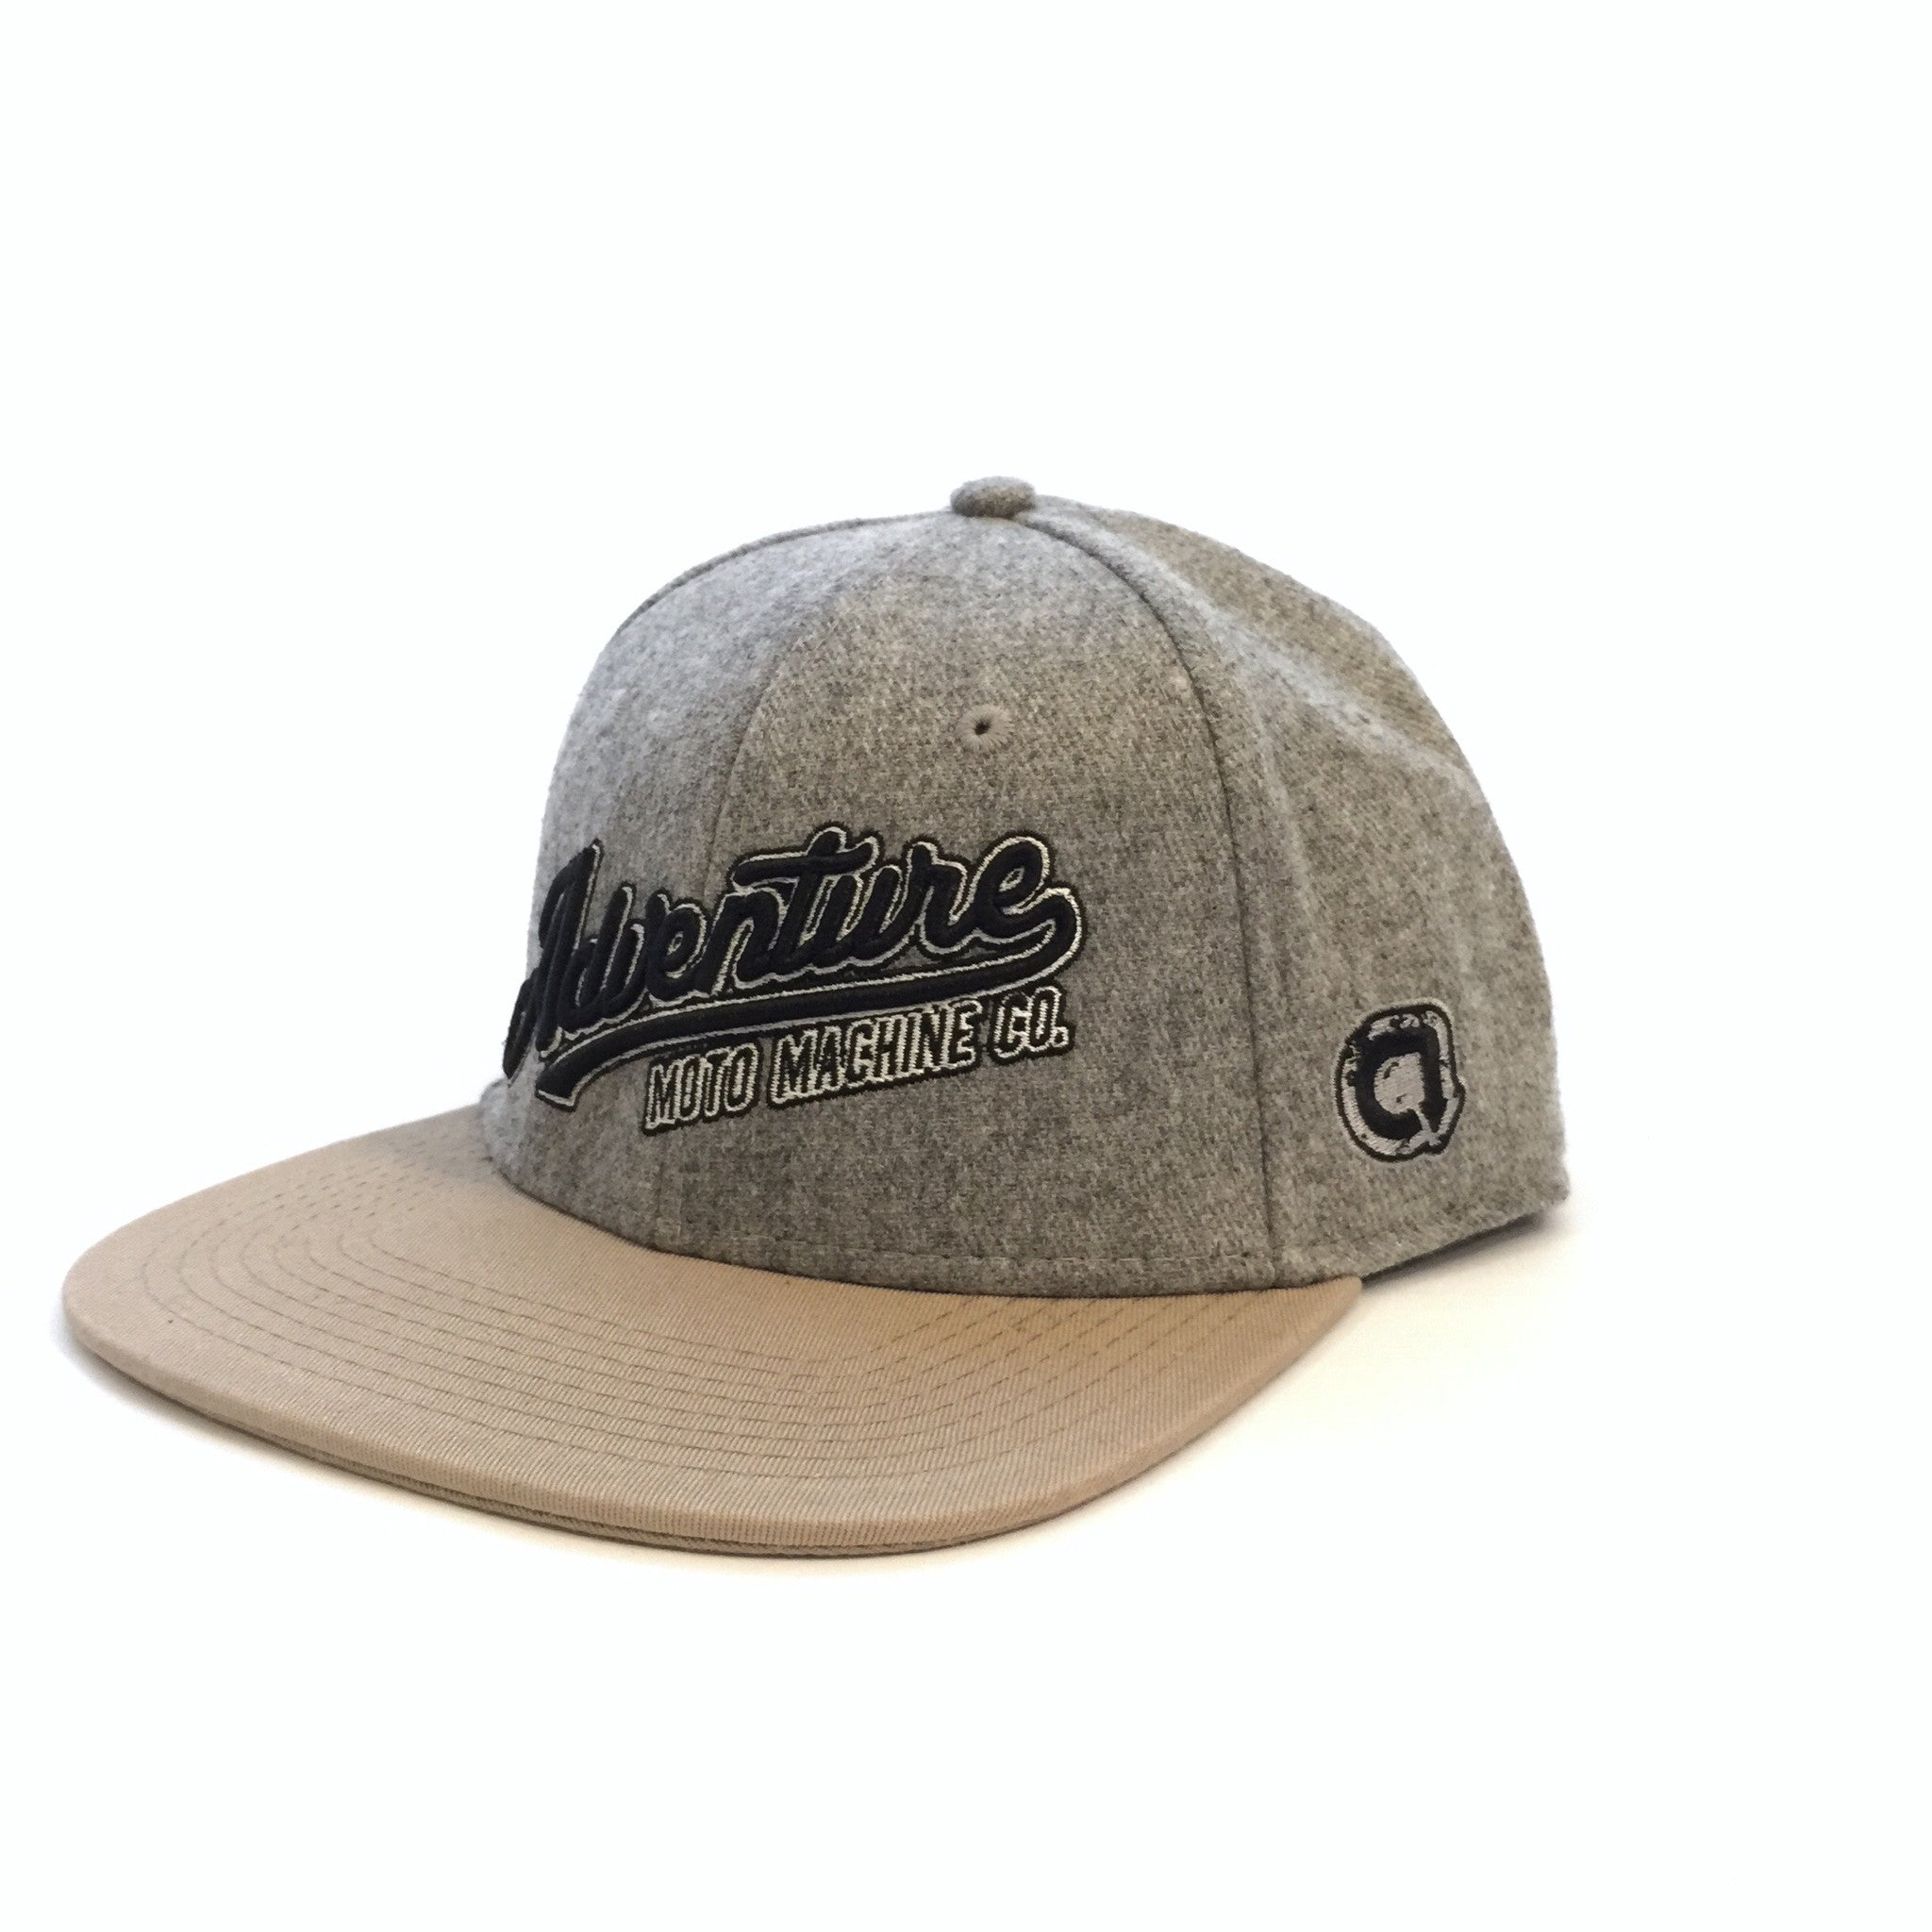 RAMBLE SNAP BACK - Heather Grey/Khaki